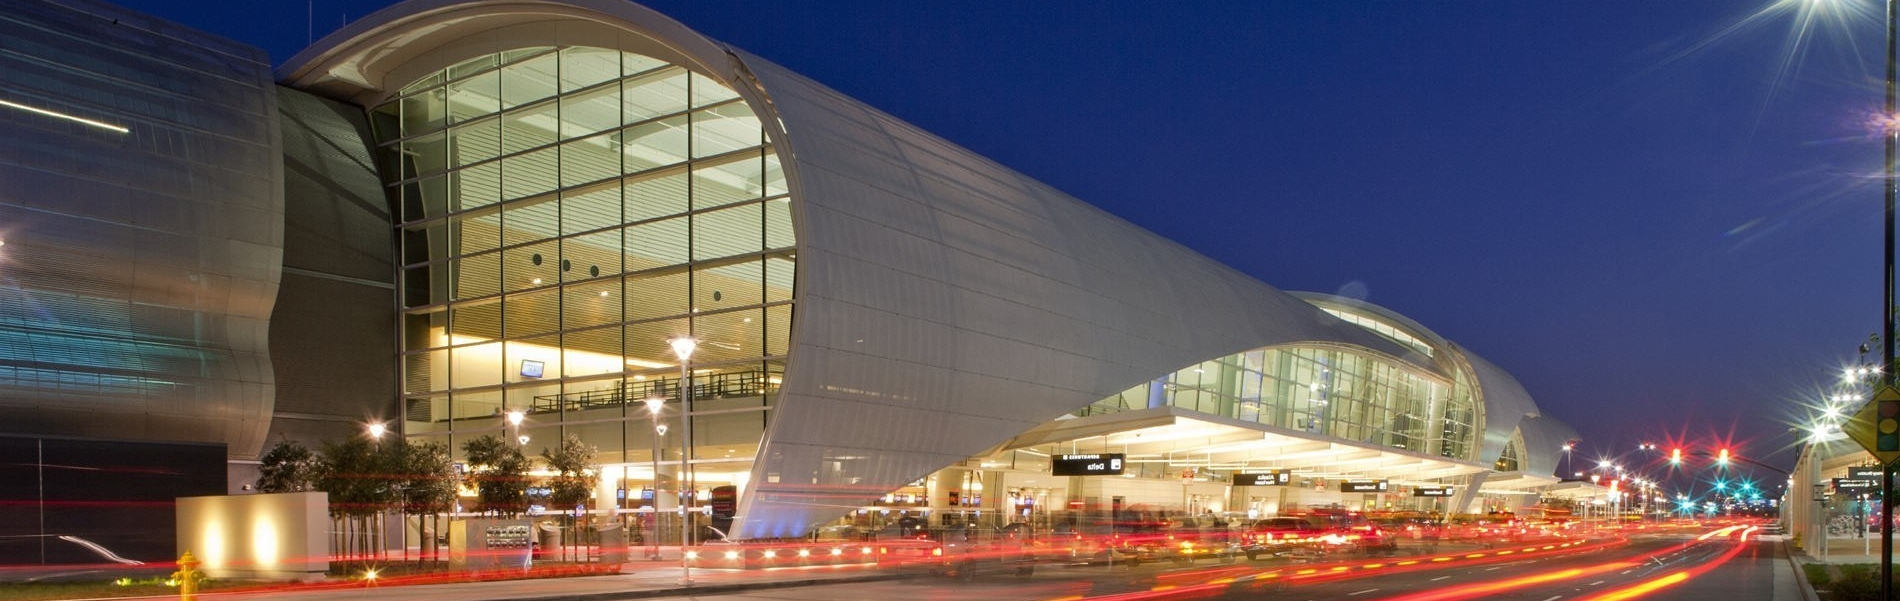 San Jose Airports | Northern California Airports | San Jose Transportation